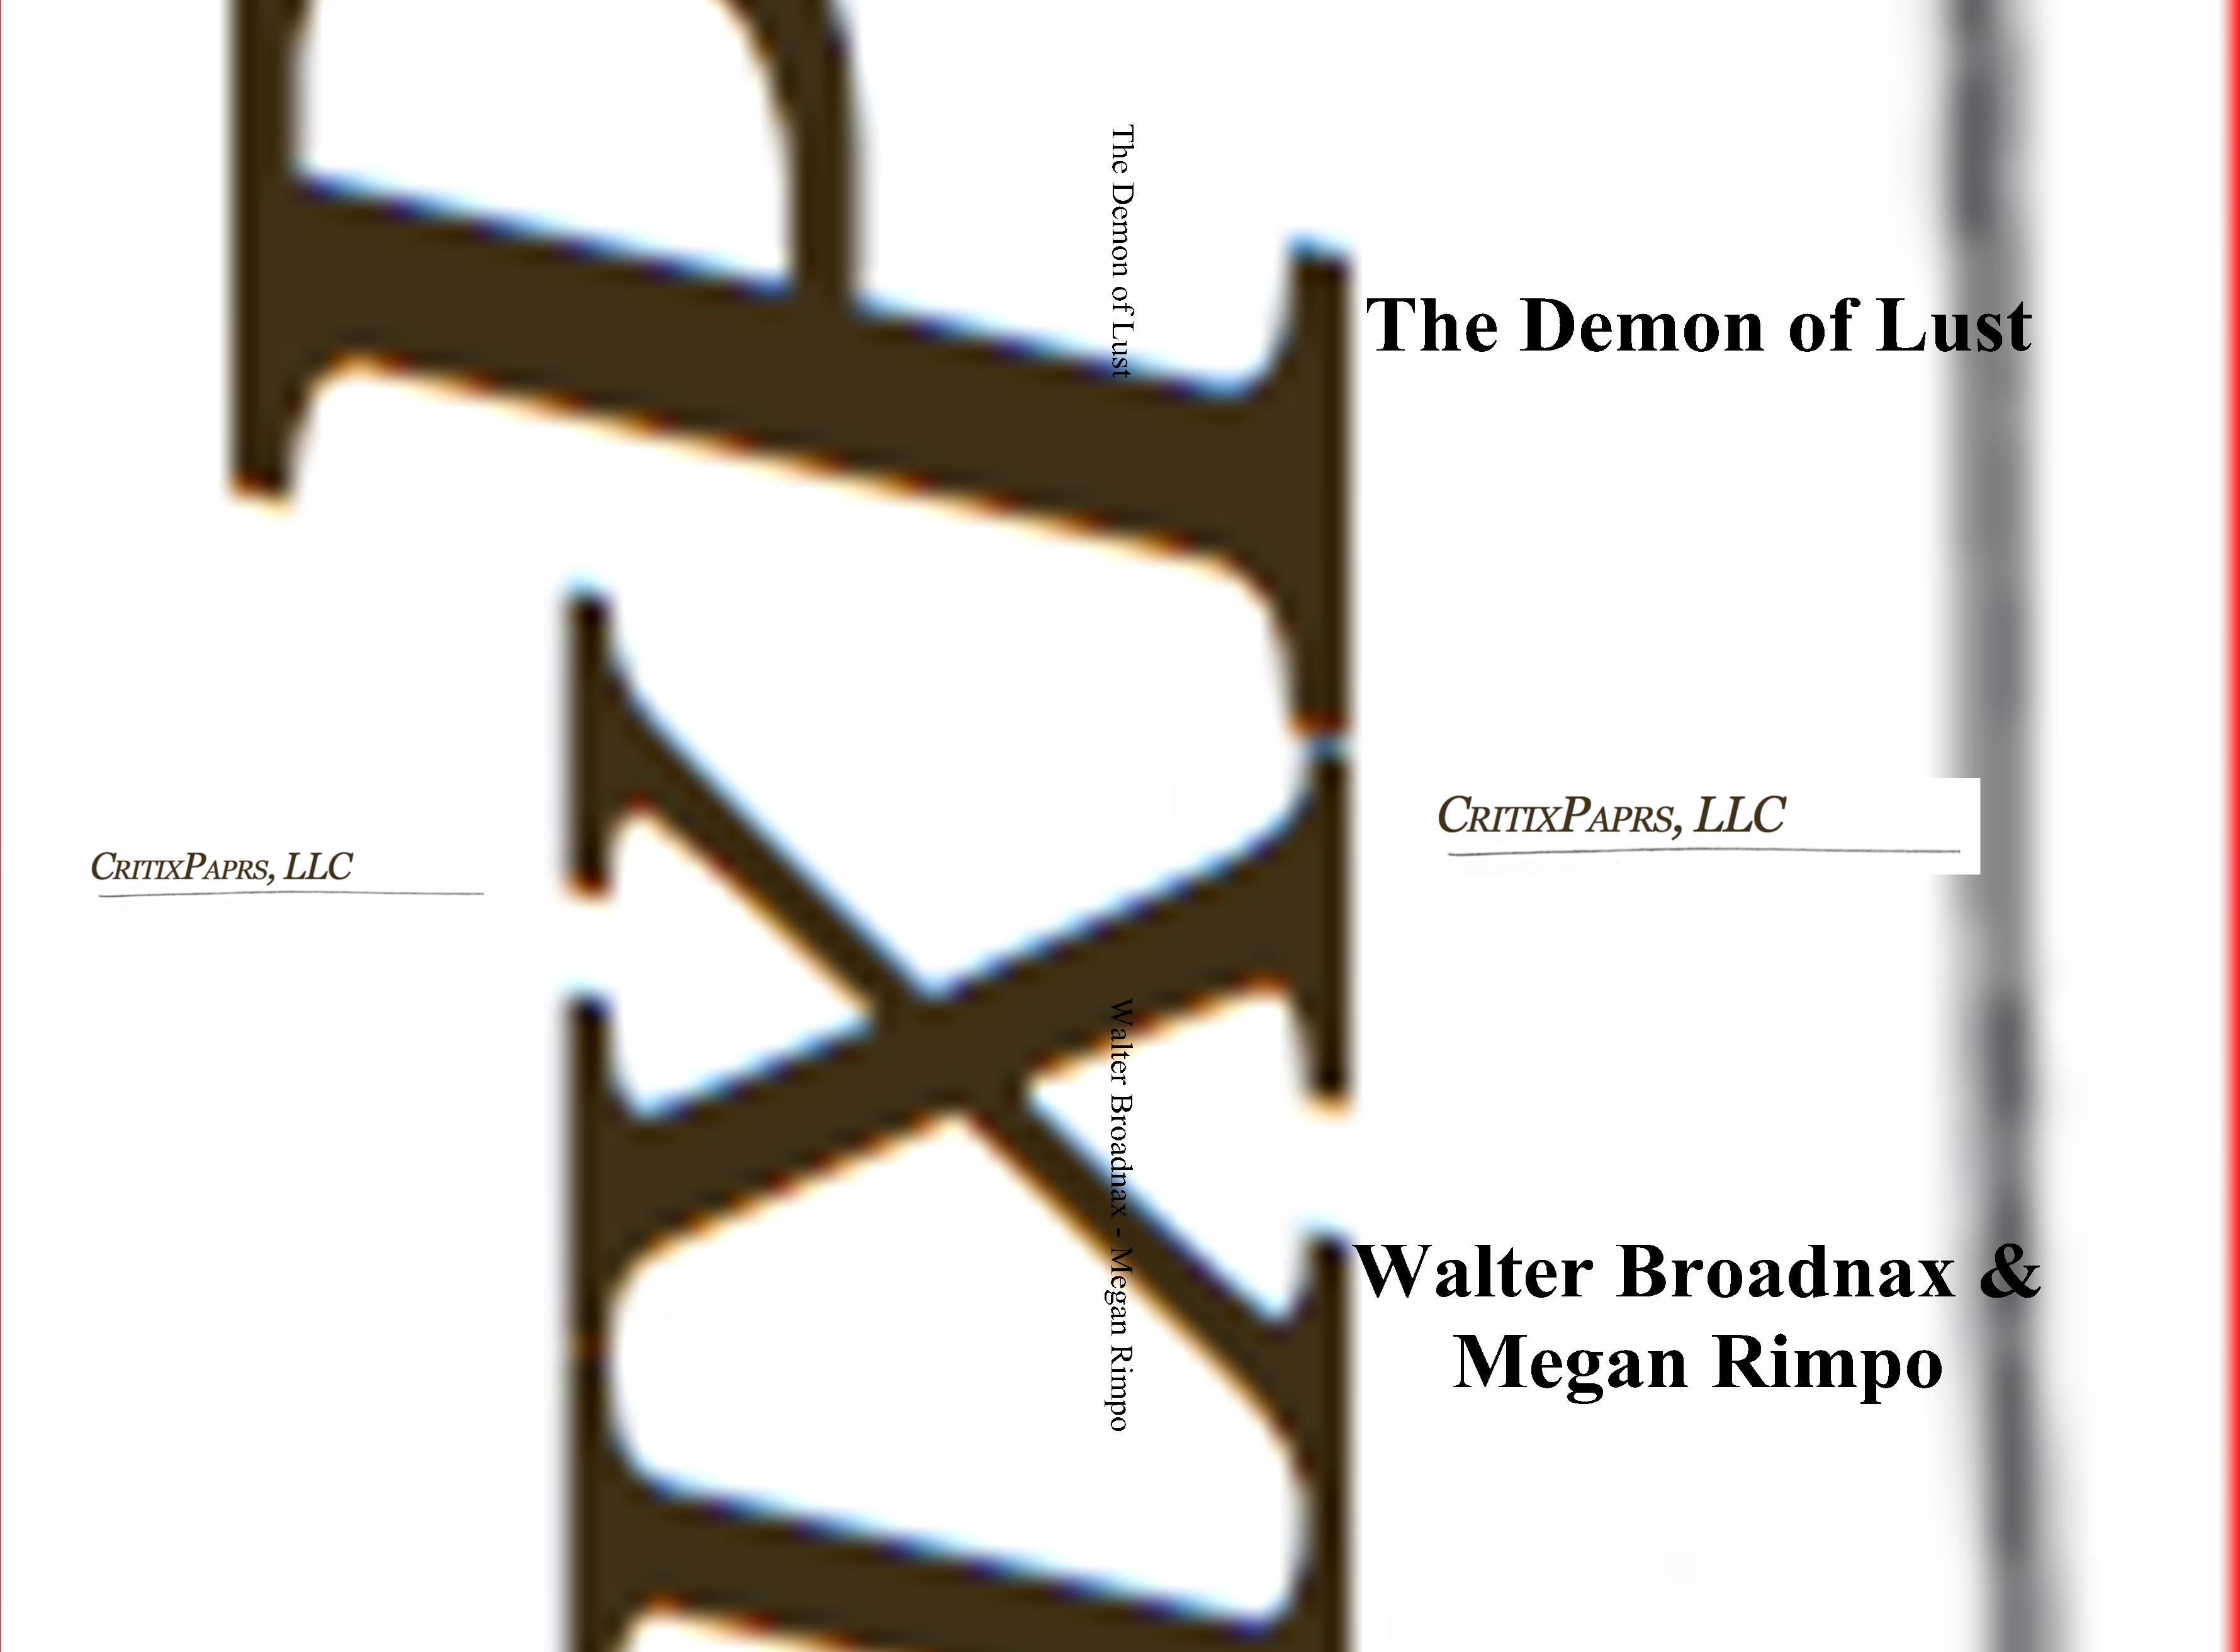 The Demon of Lust cover image